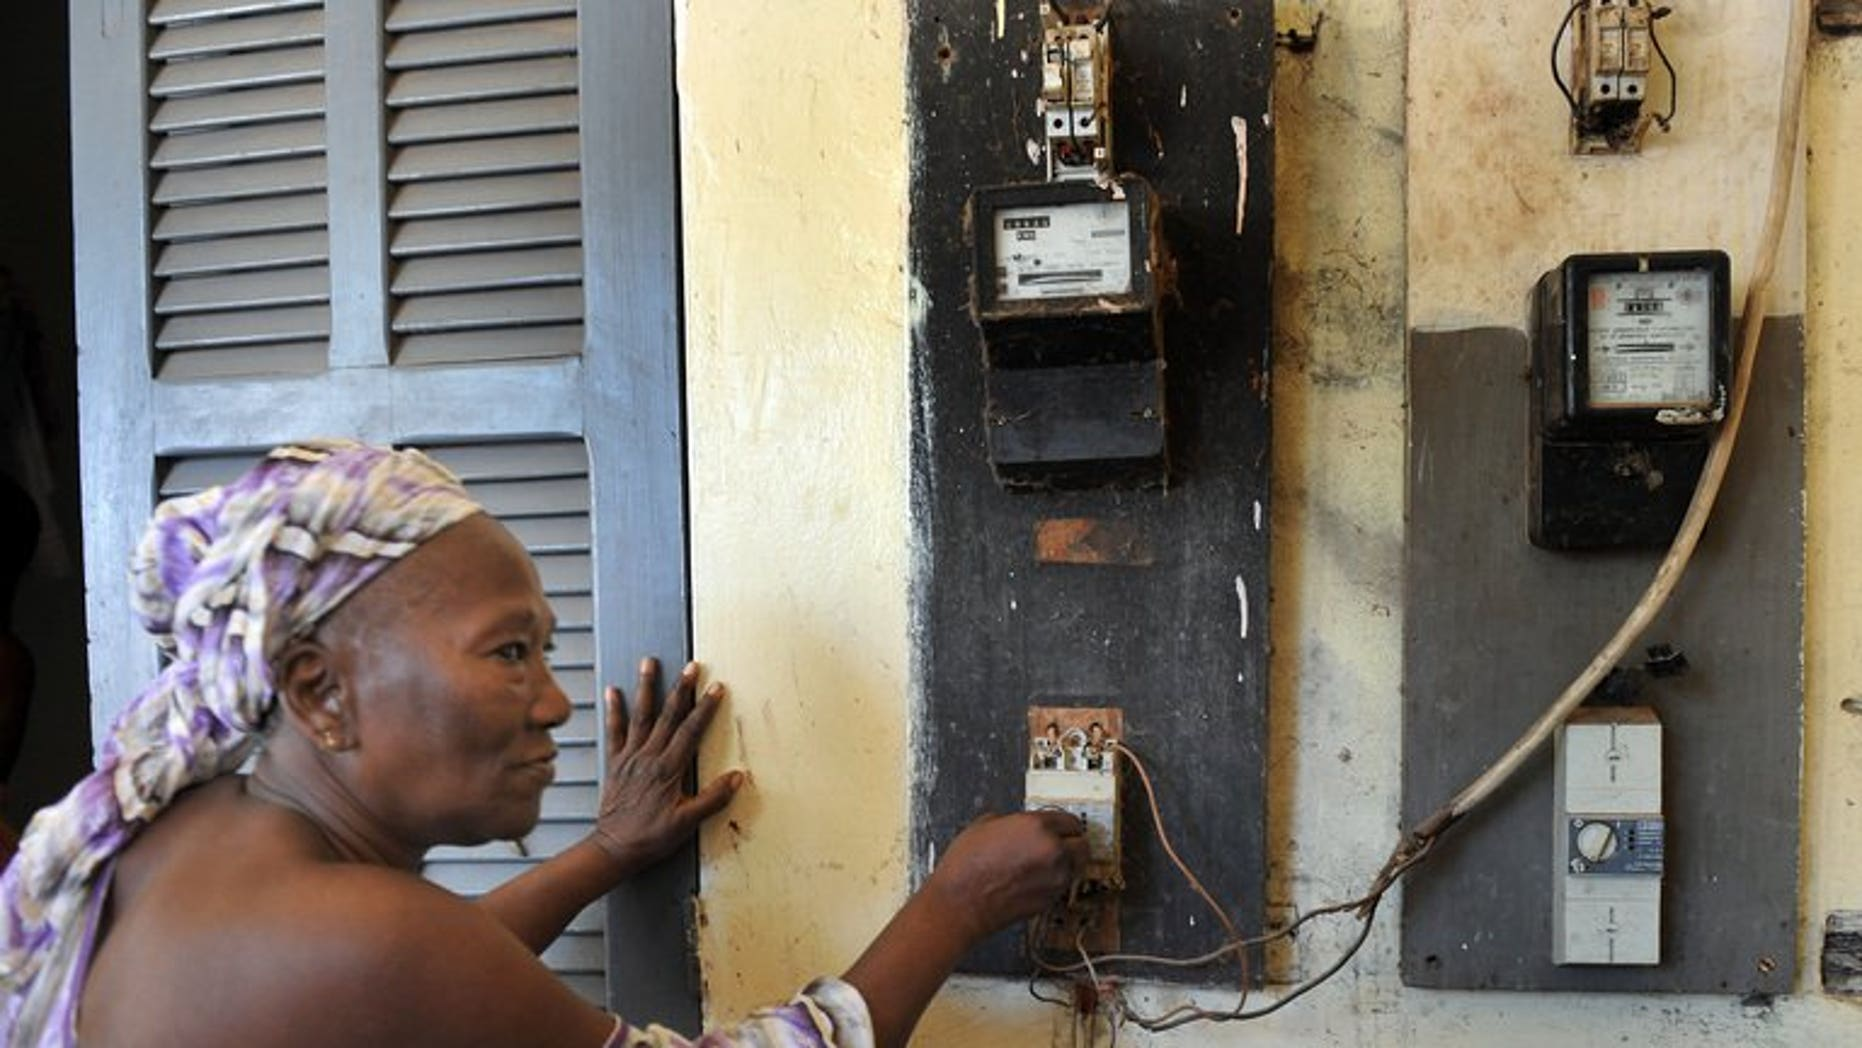 A woman disconnects her electricity counter in Dakar on July 10, 2008. Mauritania is to begin providing energy-starved Senegal with electricity within two years, both sides announced Thursday after a summit between their presidents in Dakar.